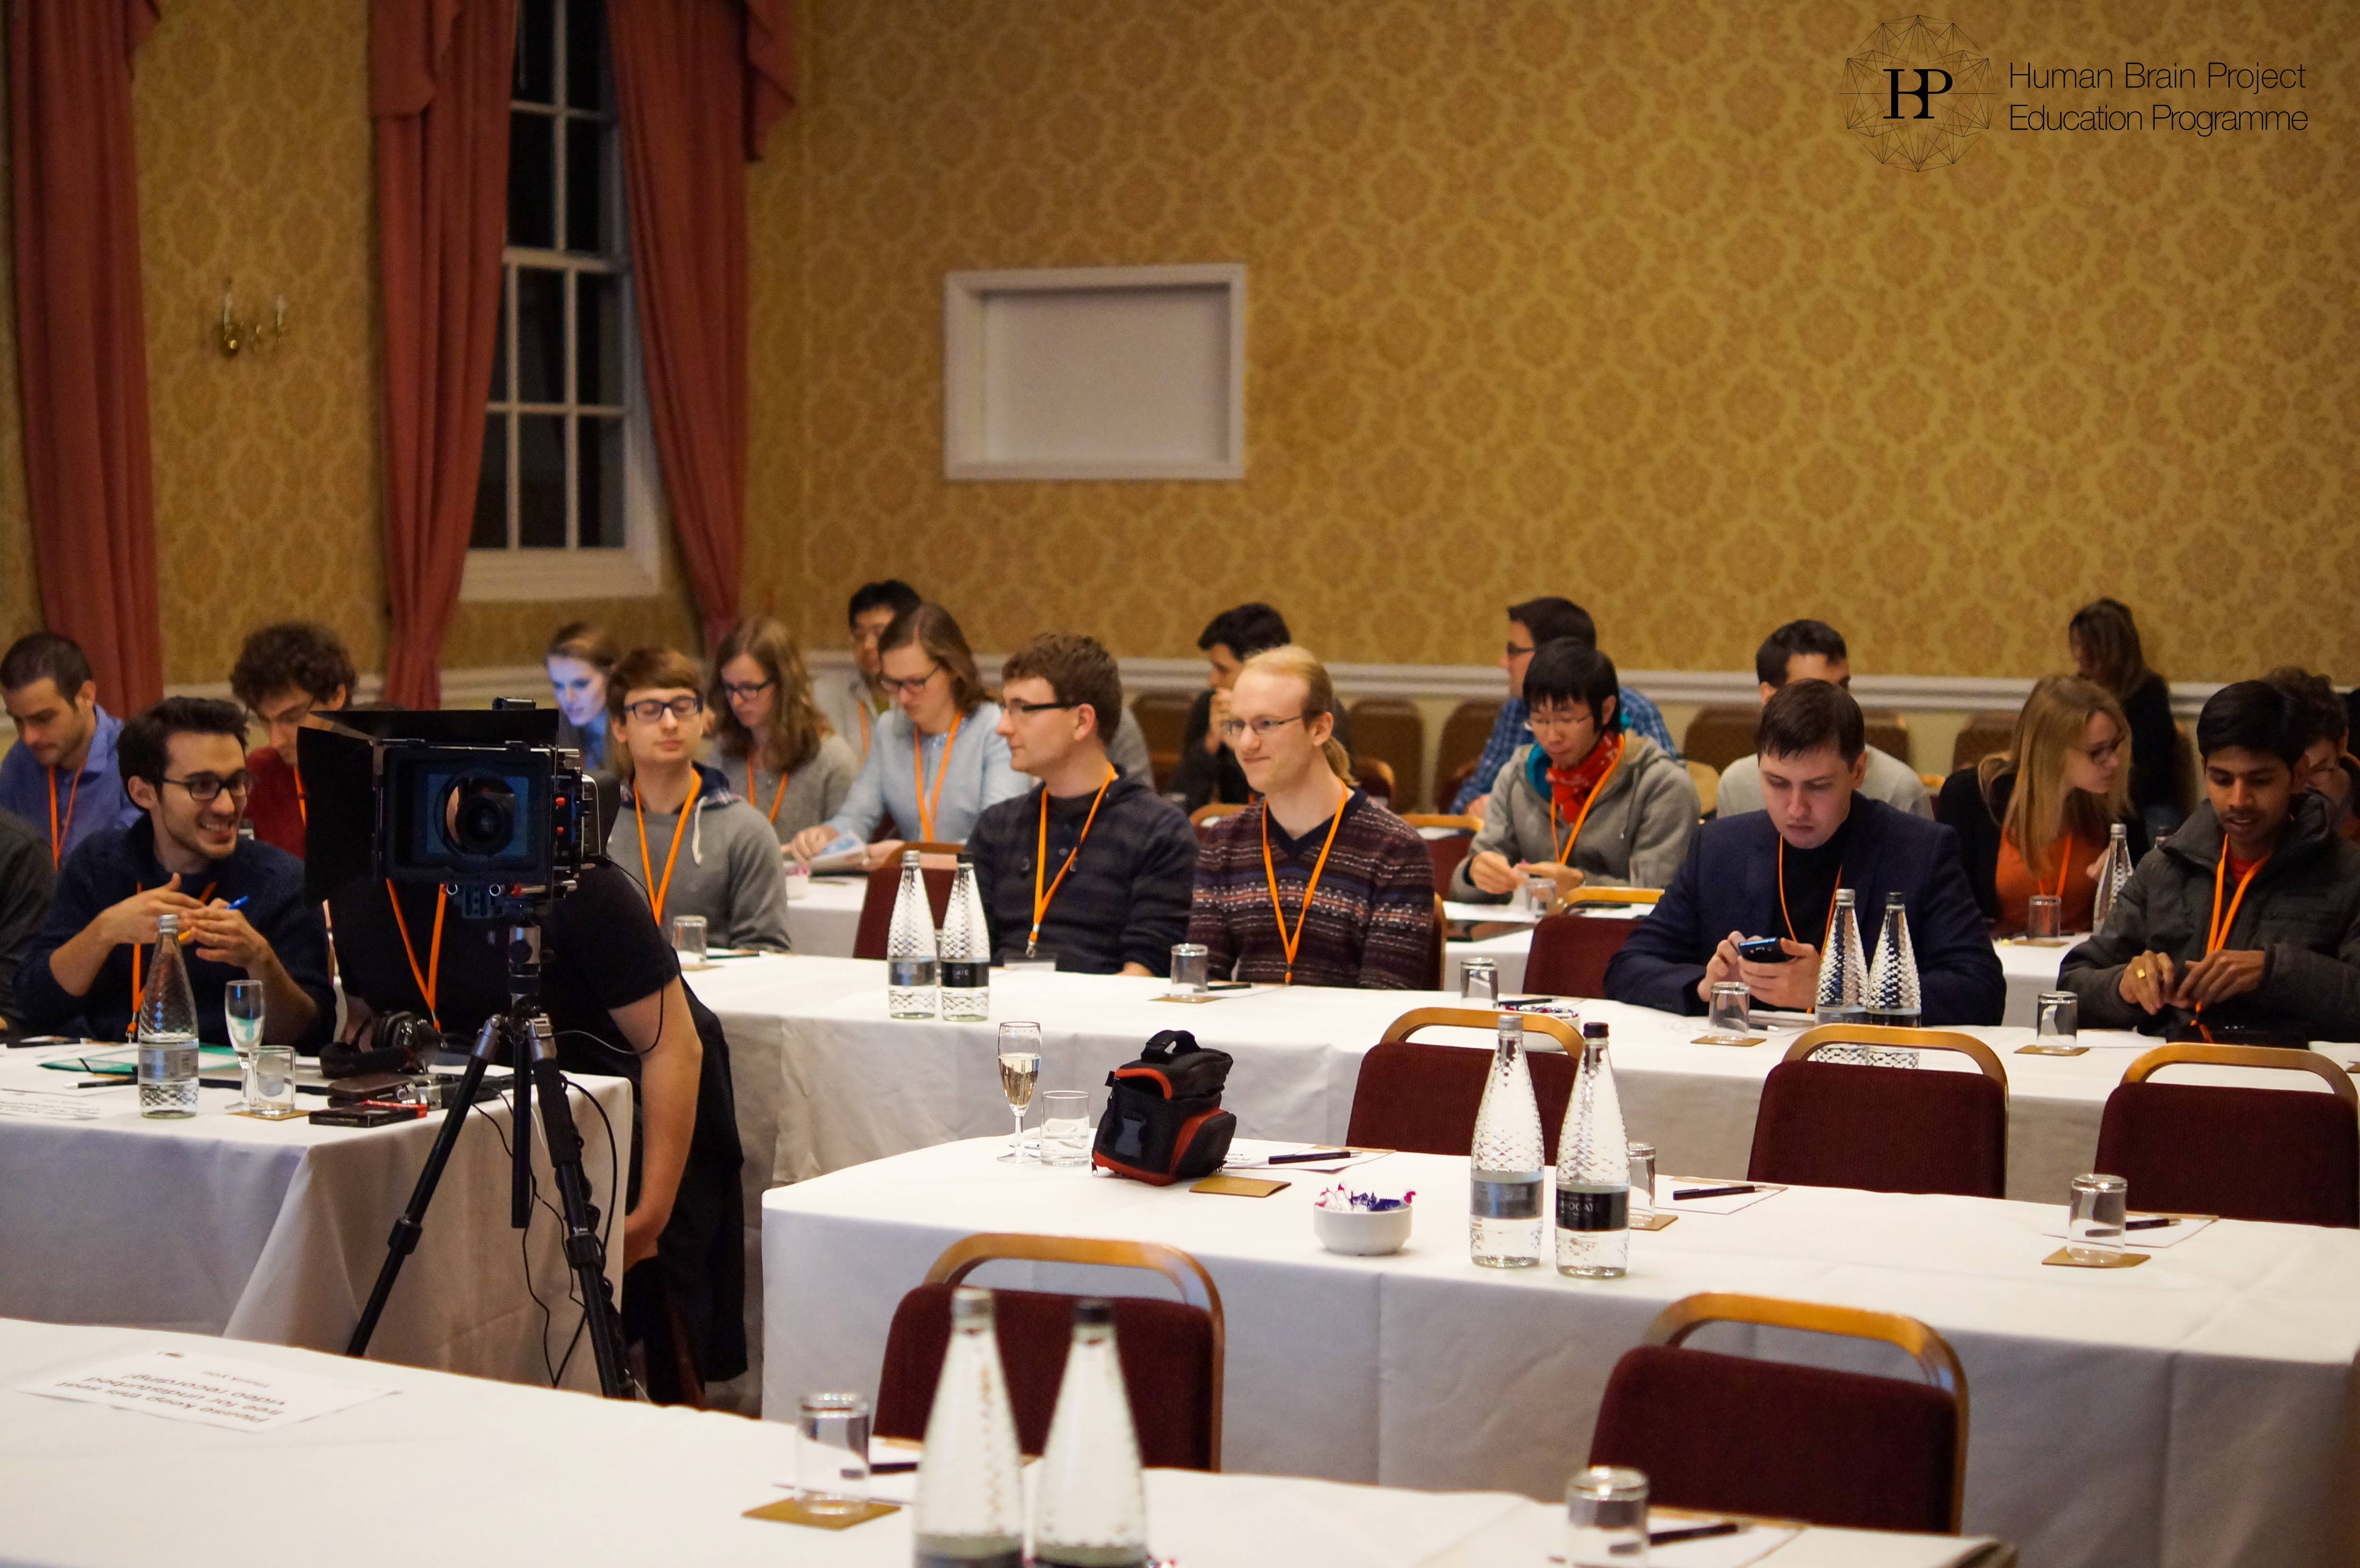 3rd_HBP_Workshop_Picture_12.jpg -